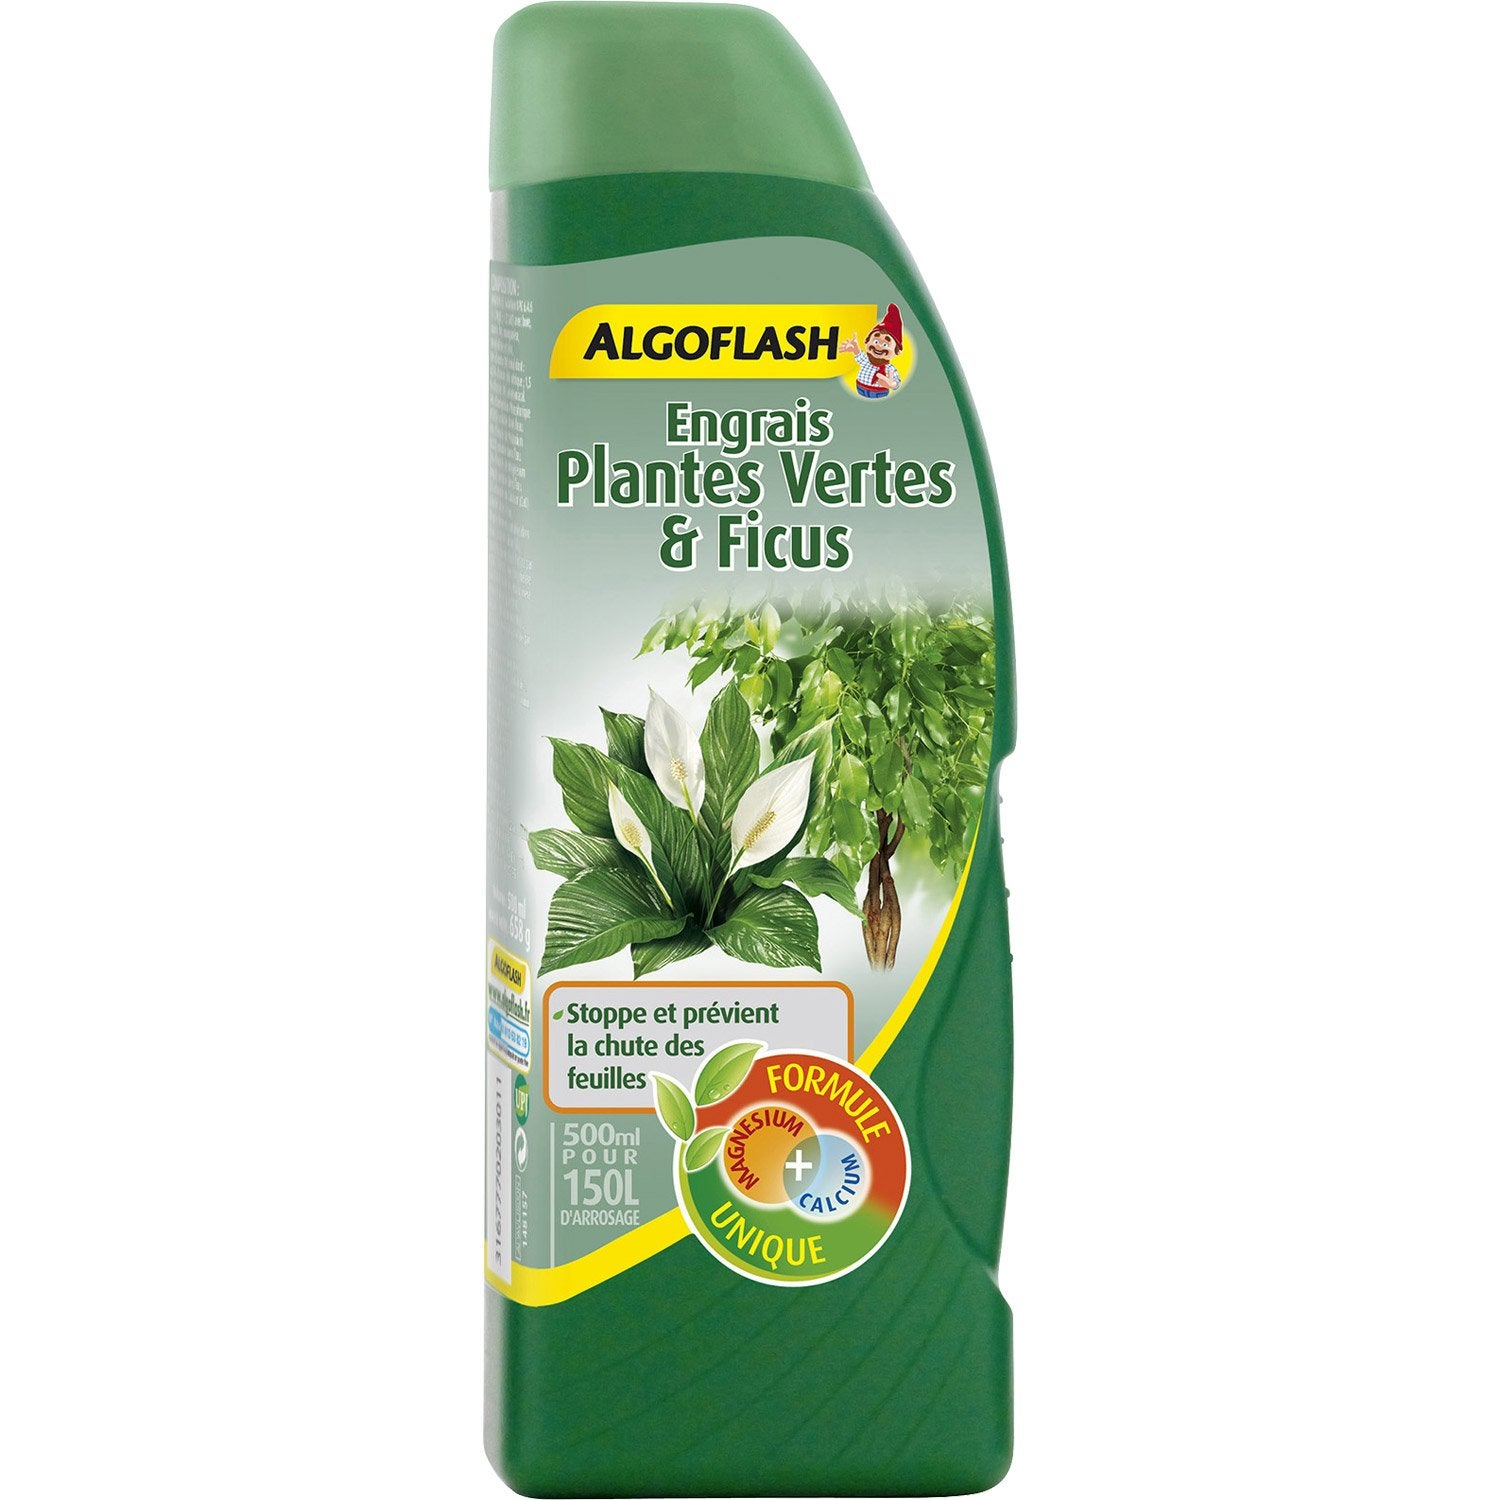 engrais plantes vertes algoflash 500ml leroy merlin. Black Bedroom Furniture Sets. Home Design Ideas